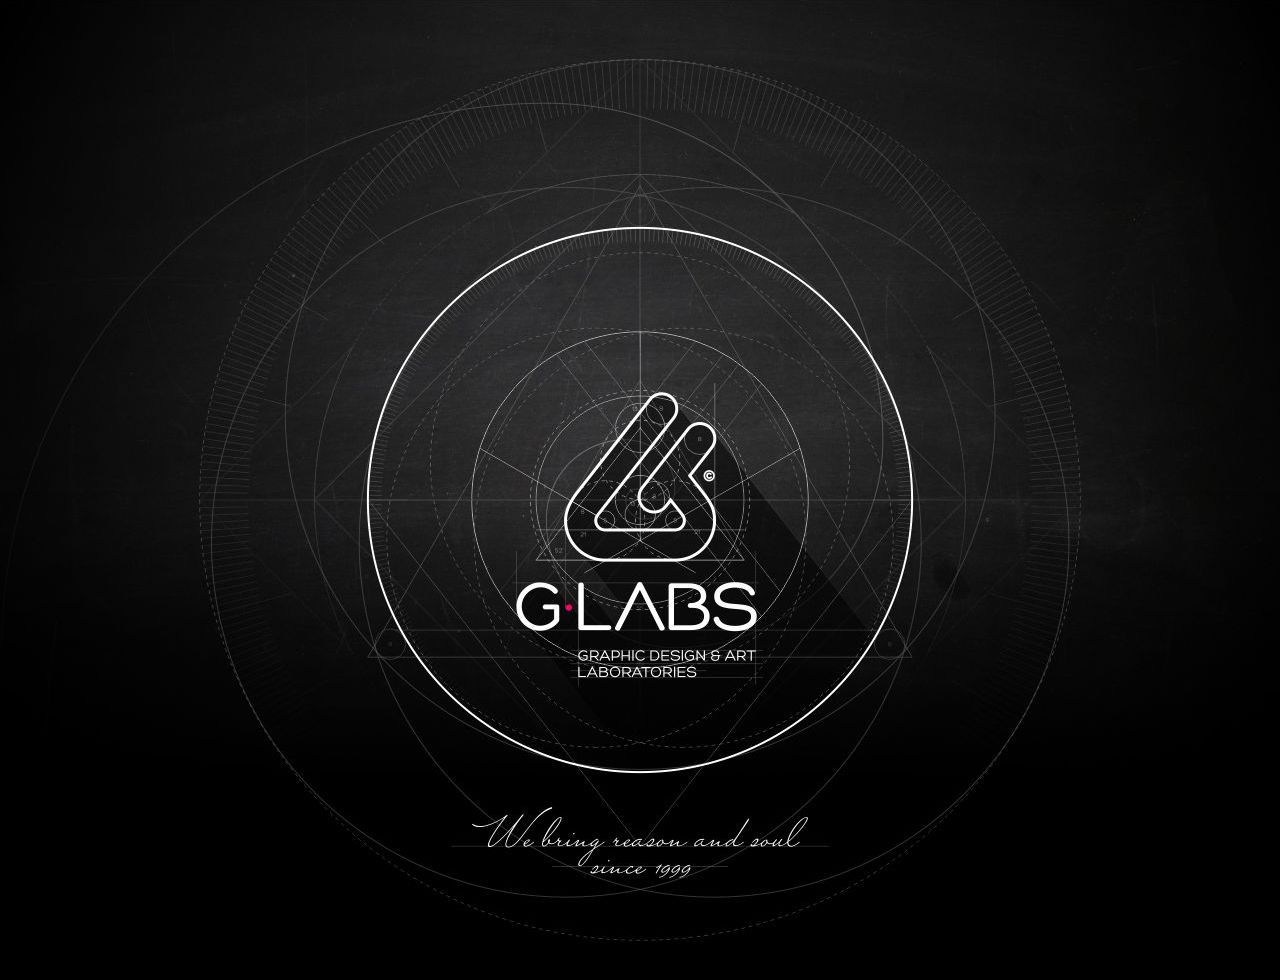 G-LABS - Graphic Design & Art Laboratories - We bring reason and soul, since 1999